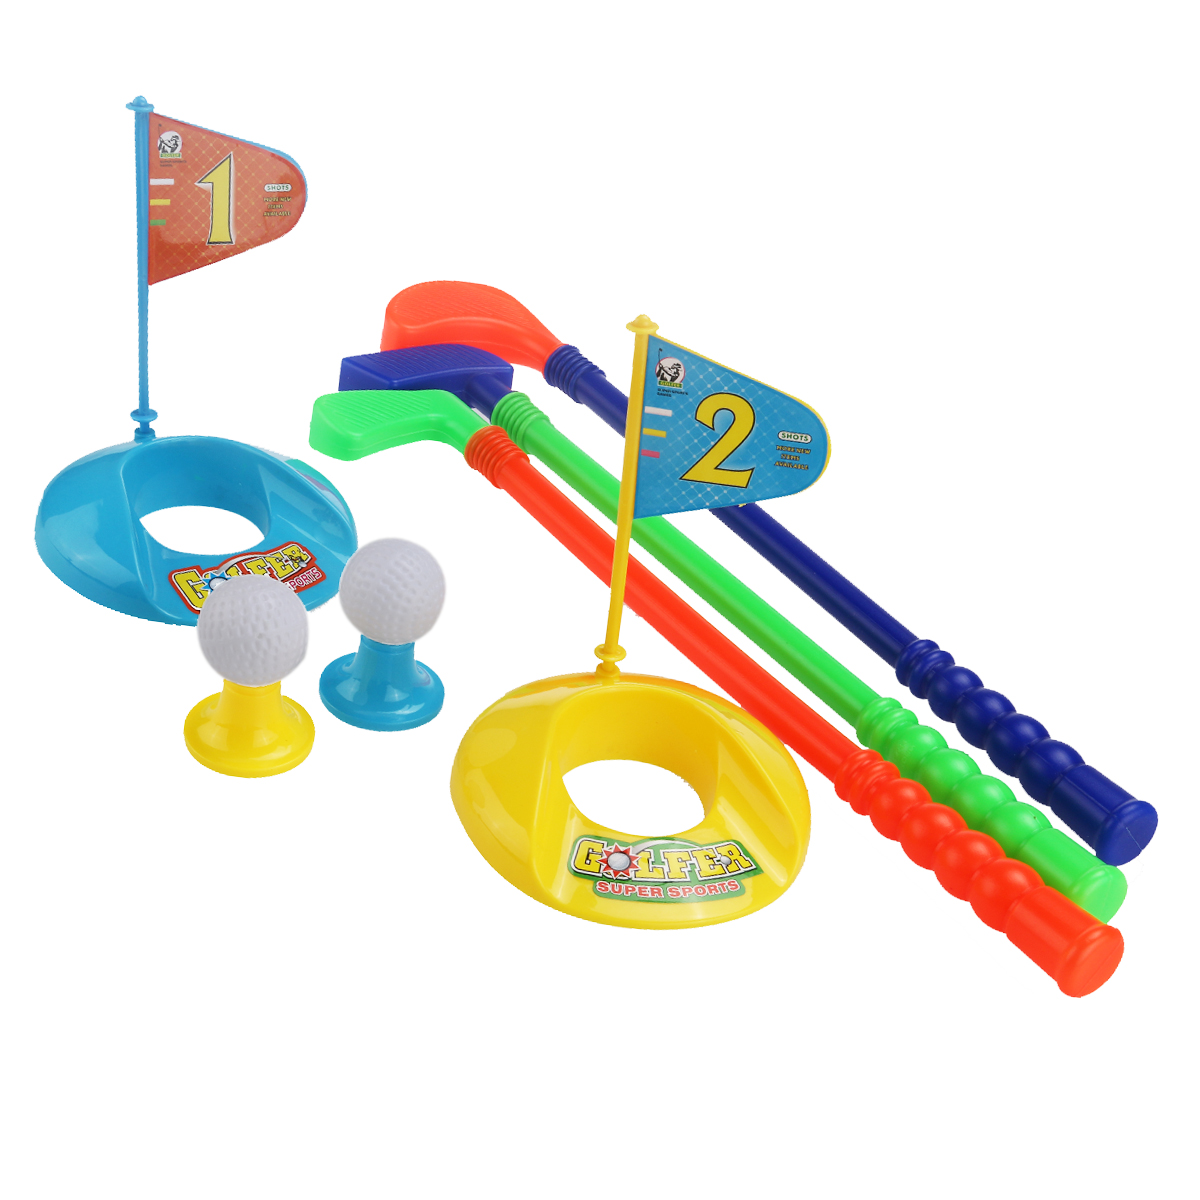 Children Kids Colorful Plastic Golfer Toy Golf Set by